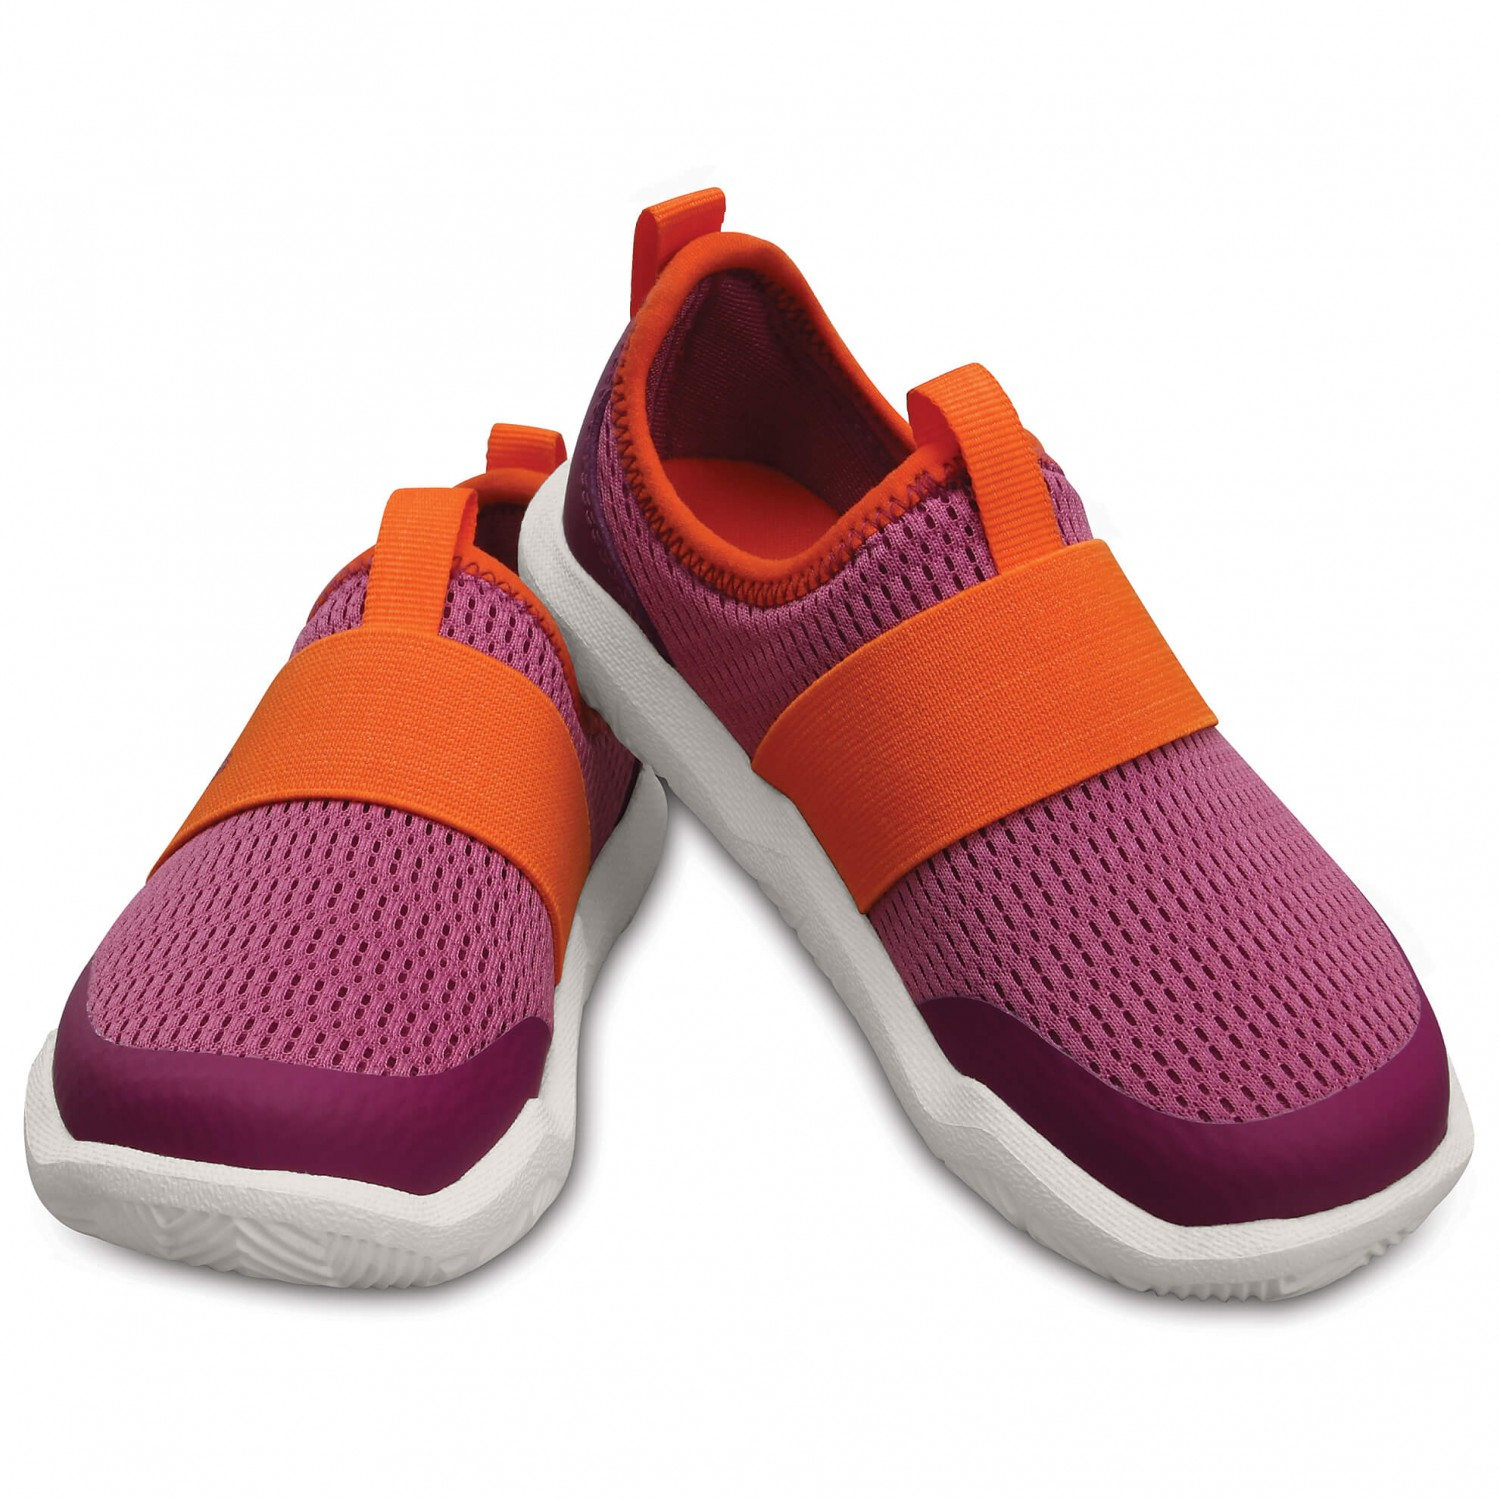 e783a54477c ... Crocs - Kid s Swiftwater Easy-On Shoe - Sandals ...